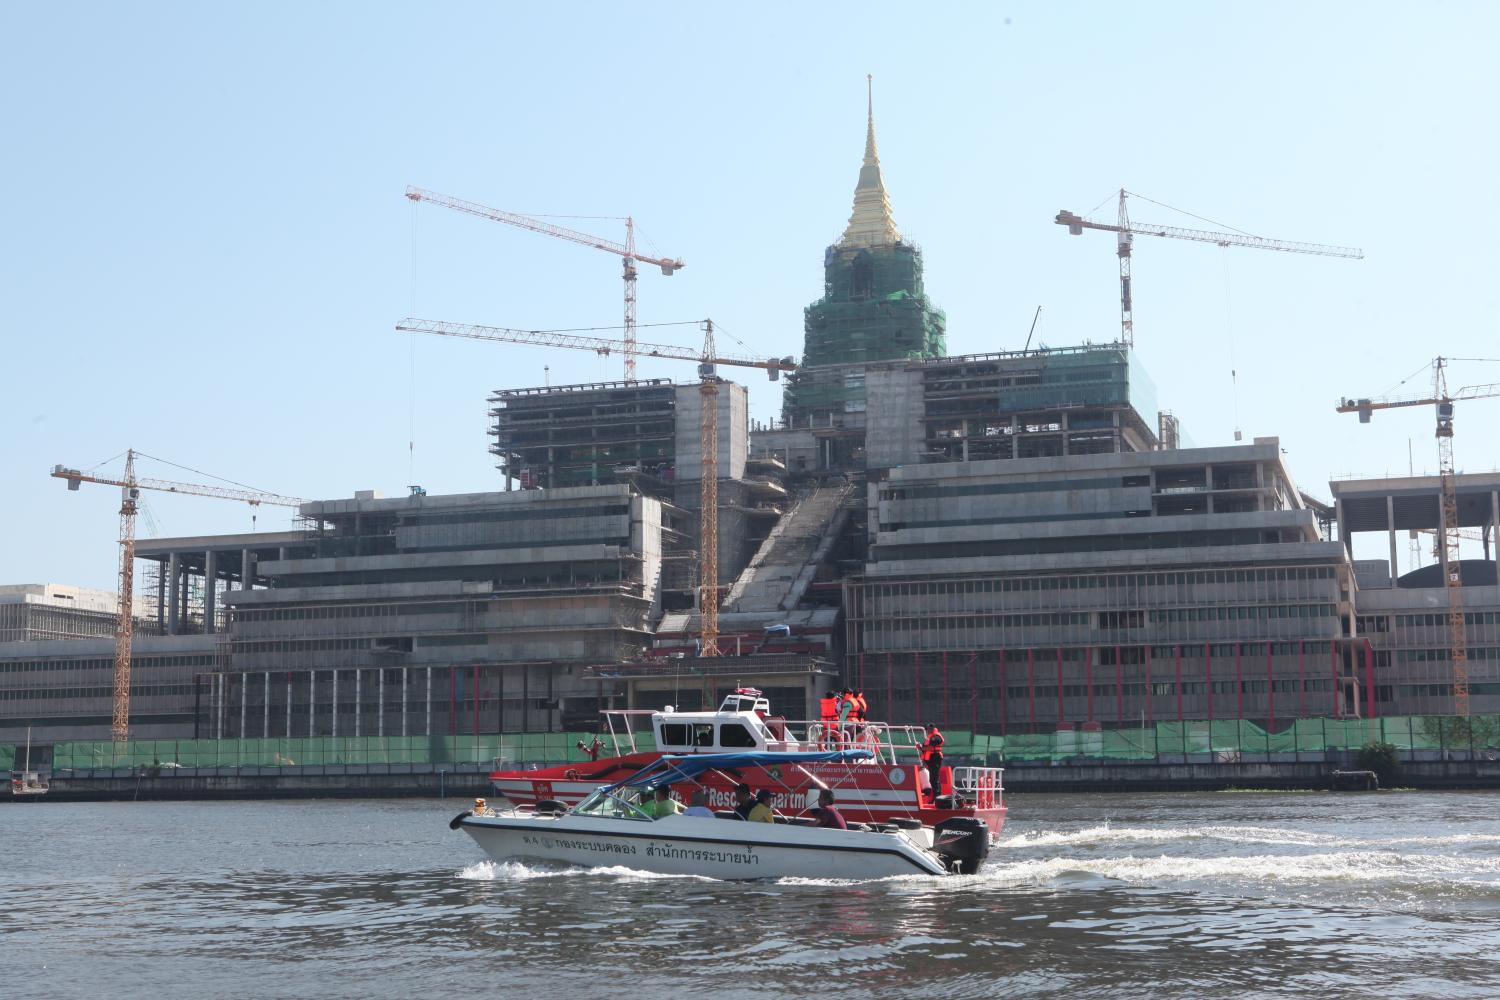 Construction of the new parliament building, named Sappaya-Saphasathan, is under way despite it being partly in use by legislators. The building sits by the Chao Phraya River and covers 300,000 square metres of land. (Photo by Apichart Jinakul)